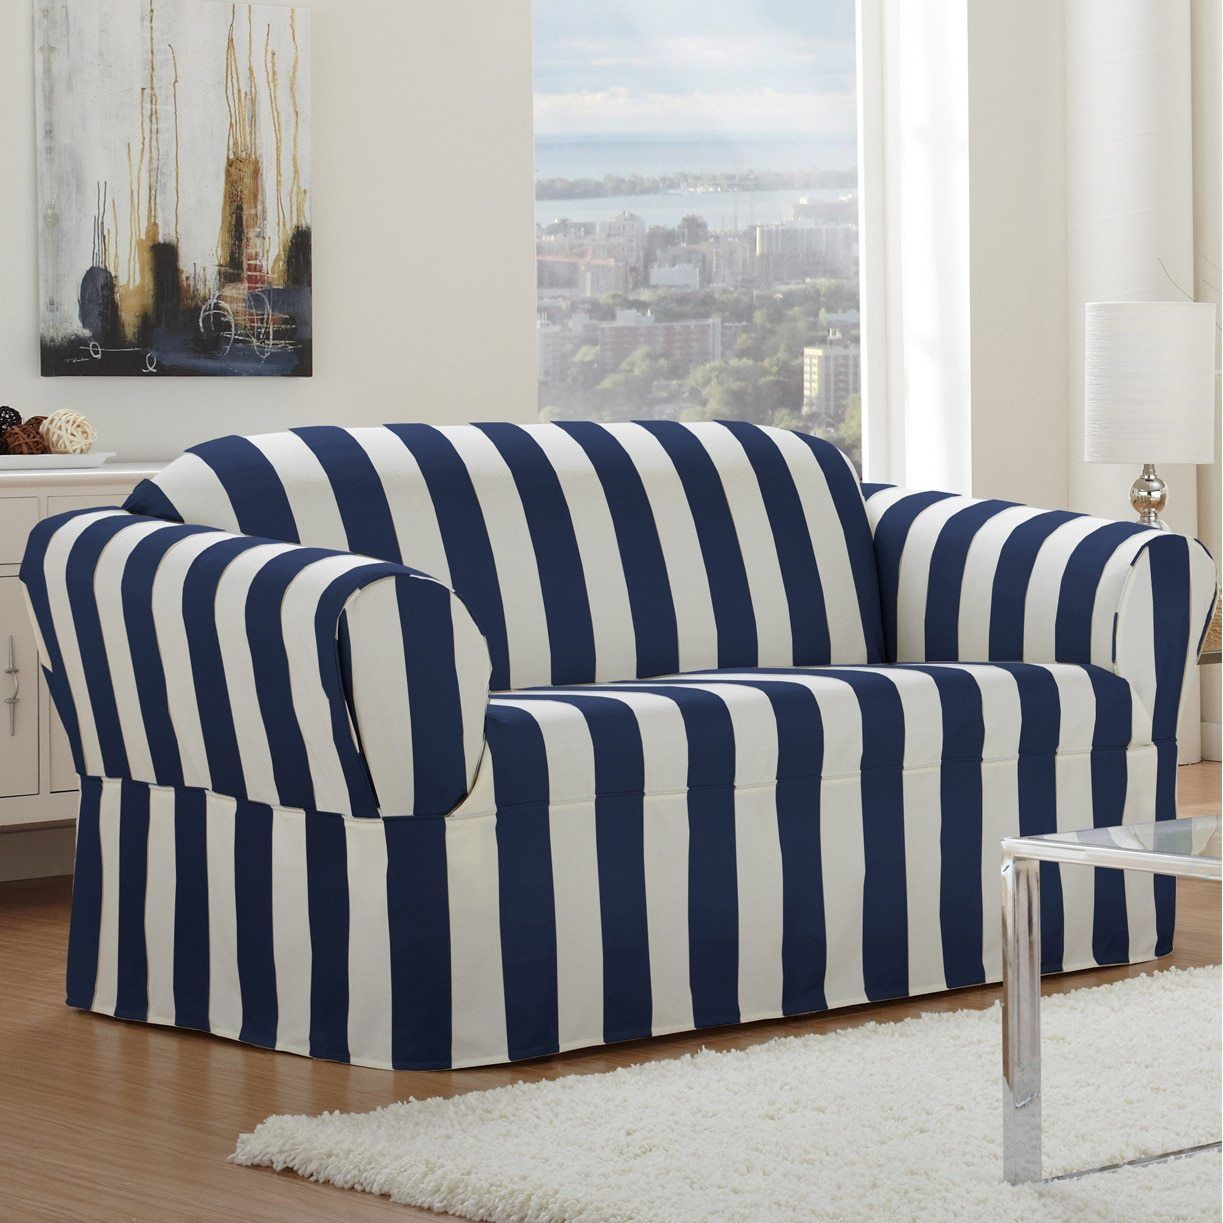 Pin On Latest Sofa Design For Home